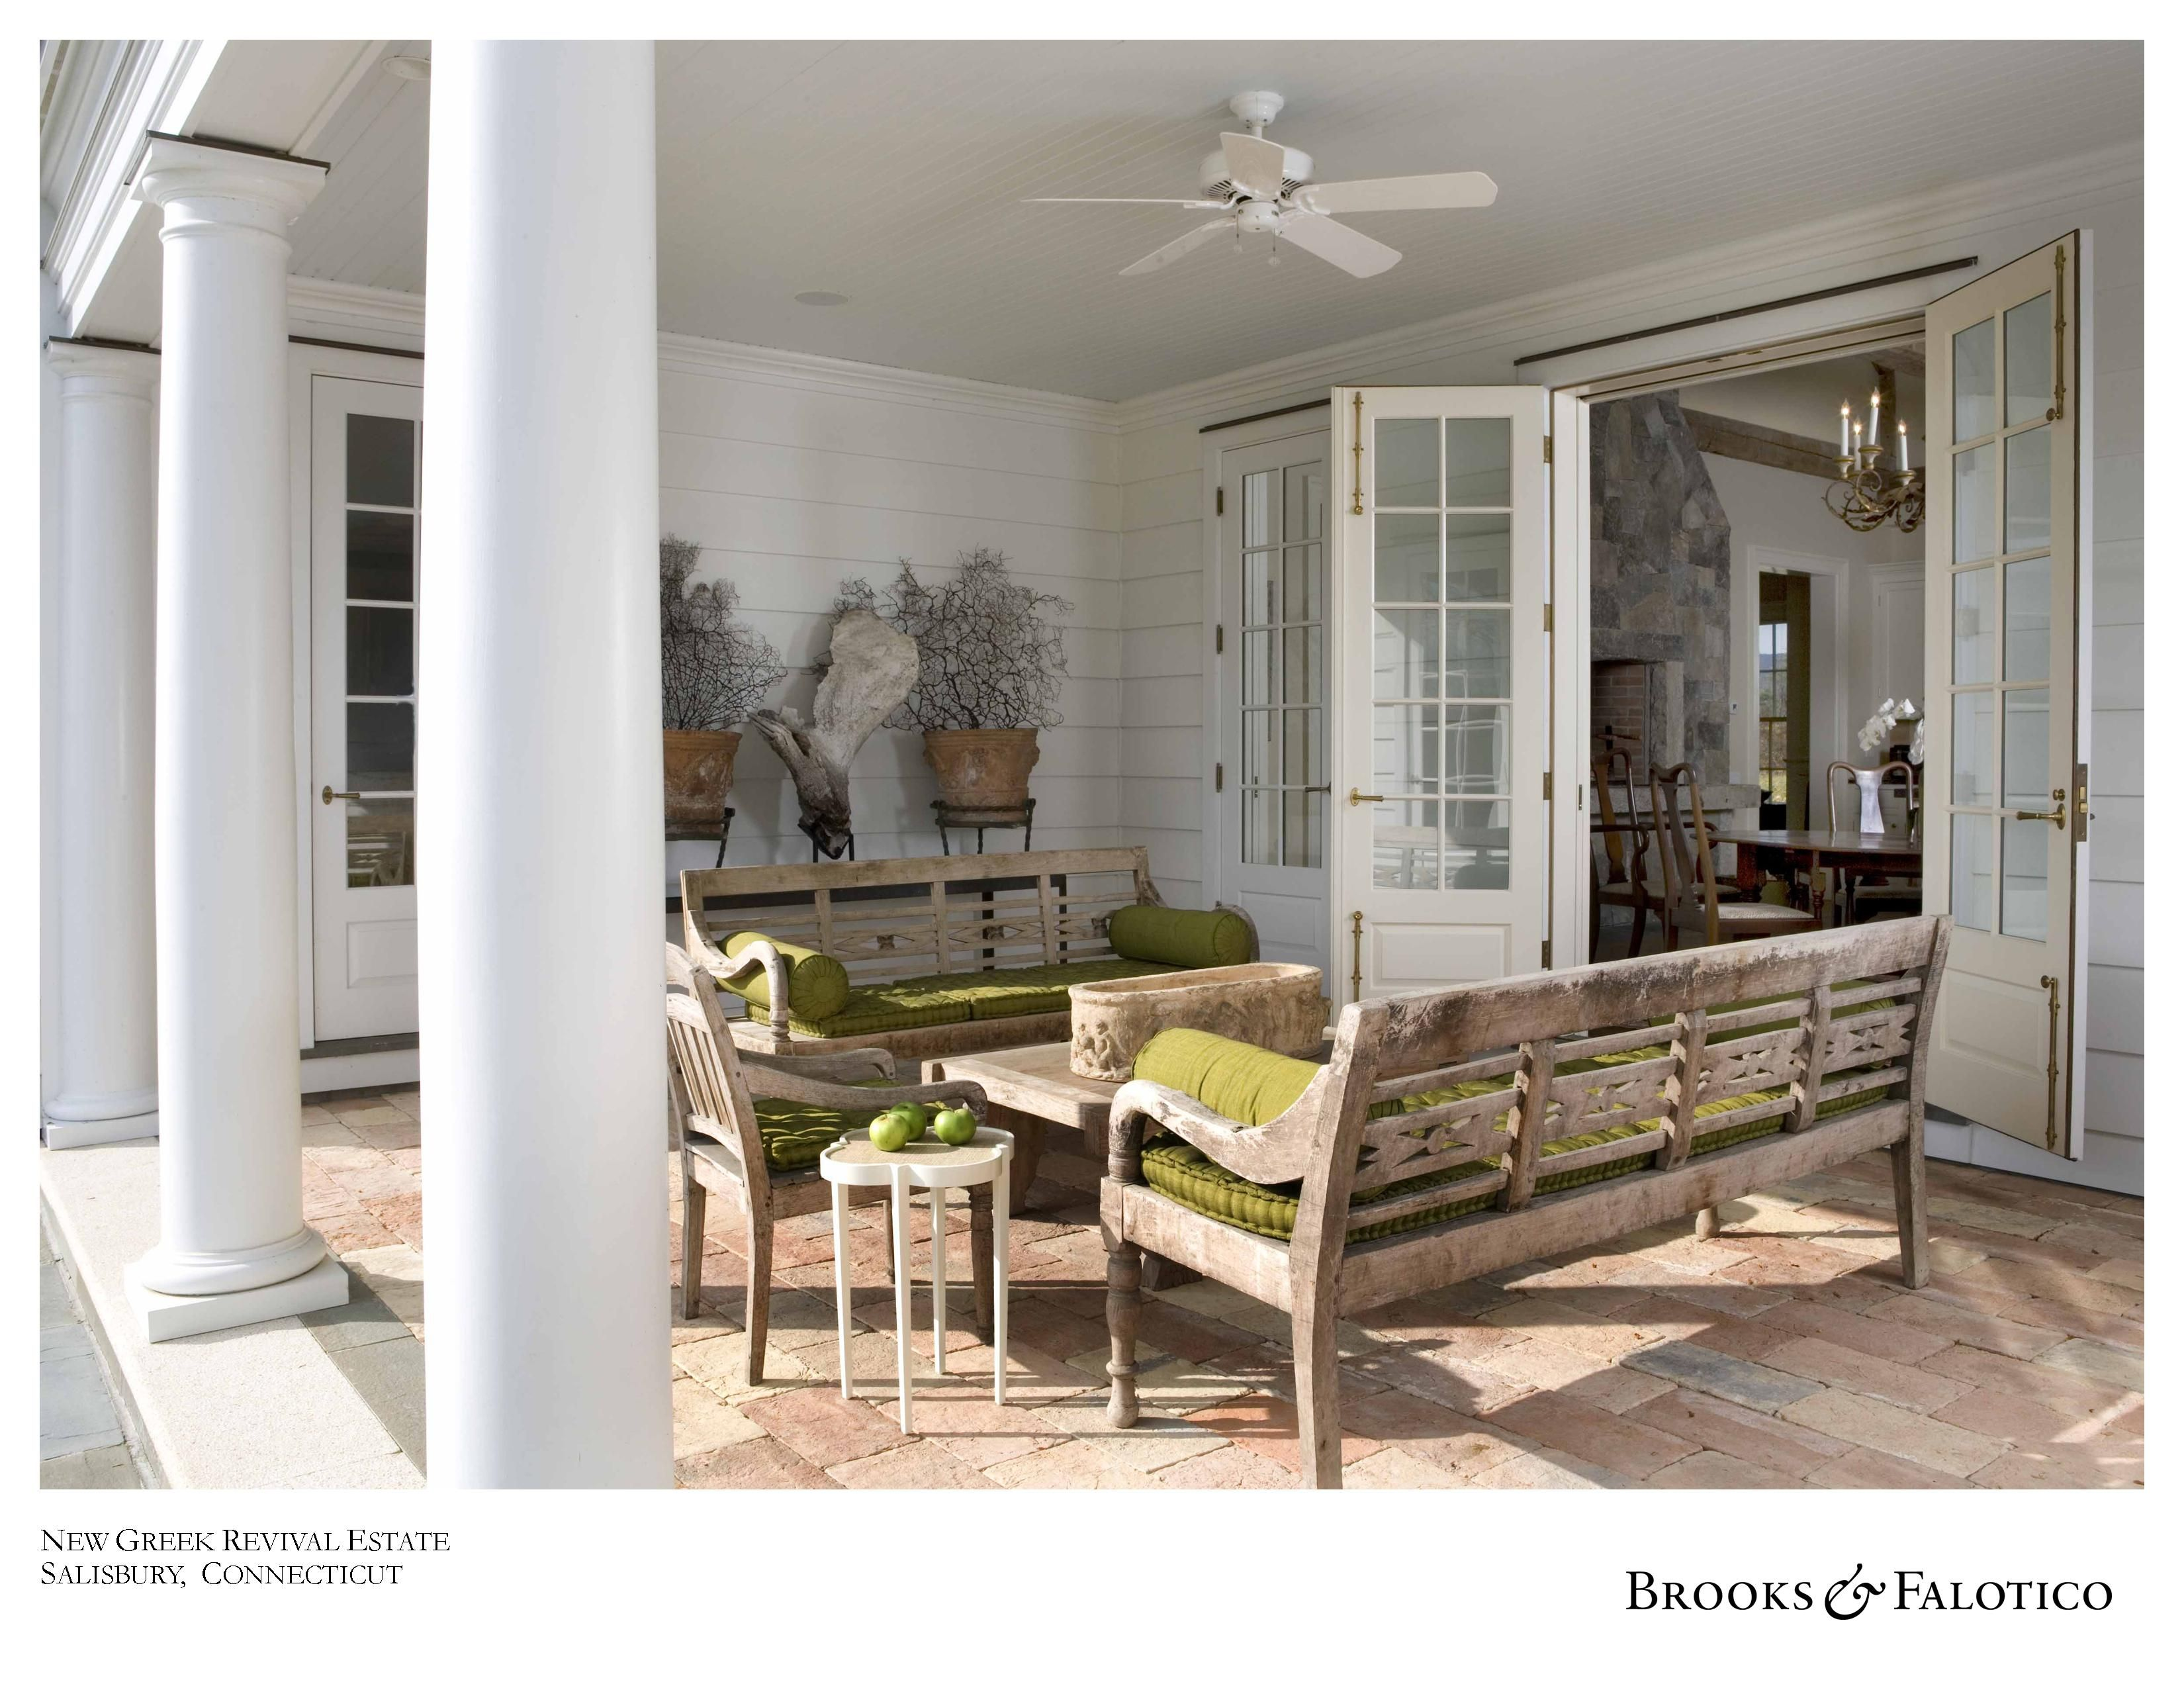 Covered porch give this home presence and style rustic brick